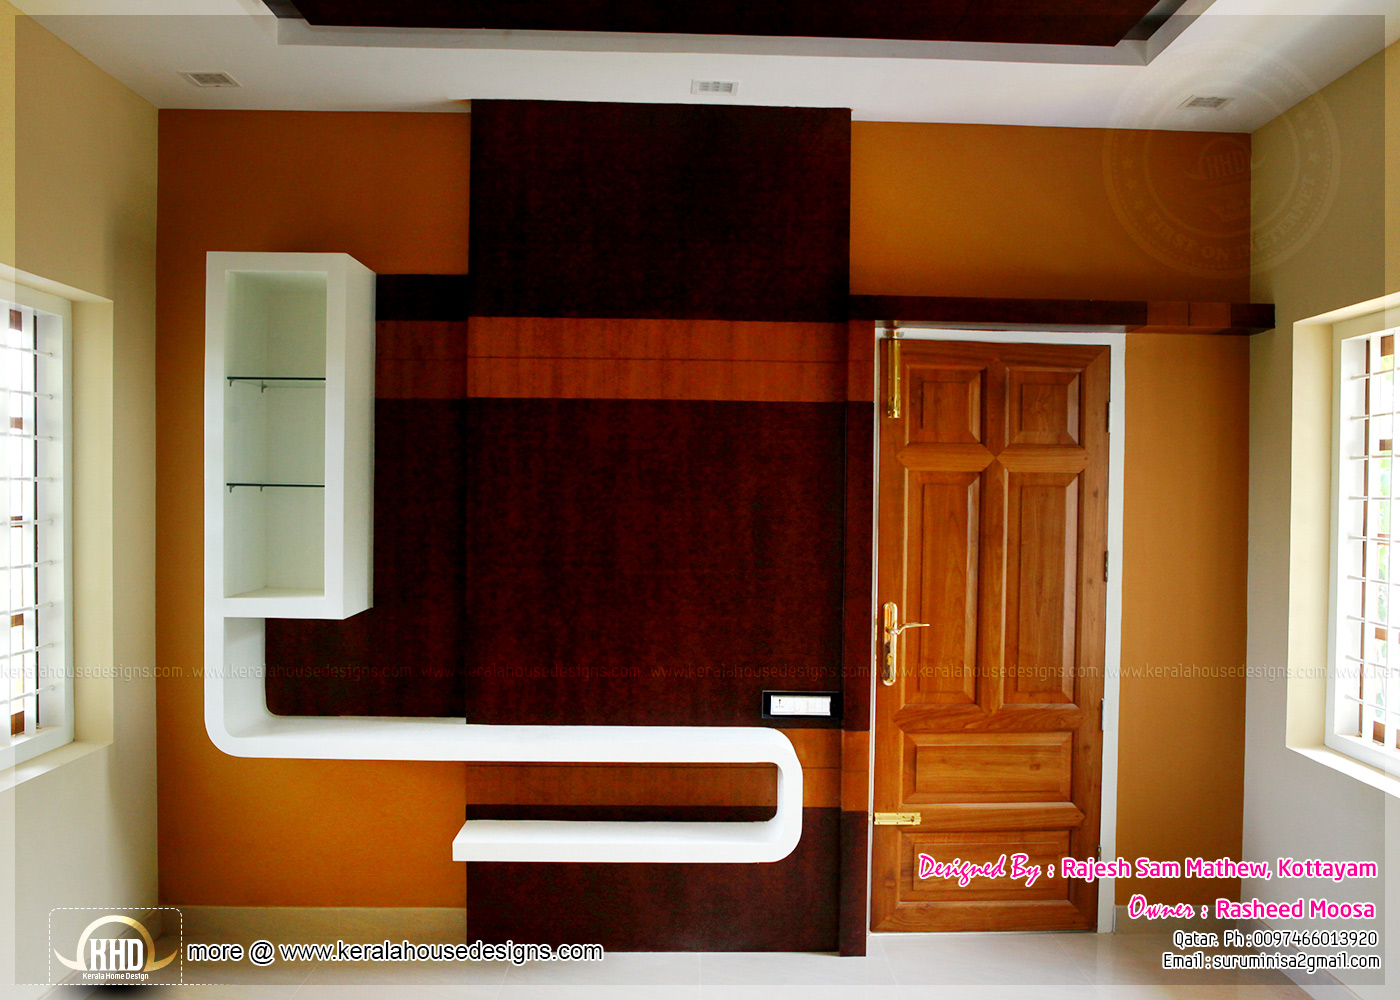 Kerala interior design with photos kerala home design for Home interior design india